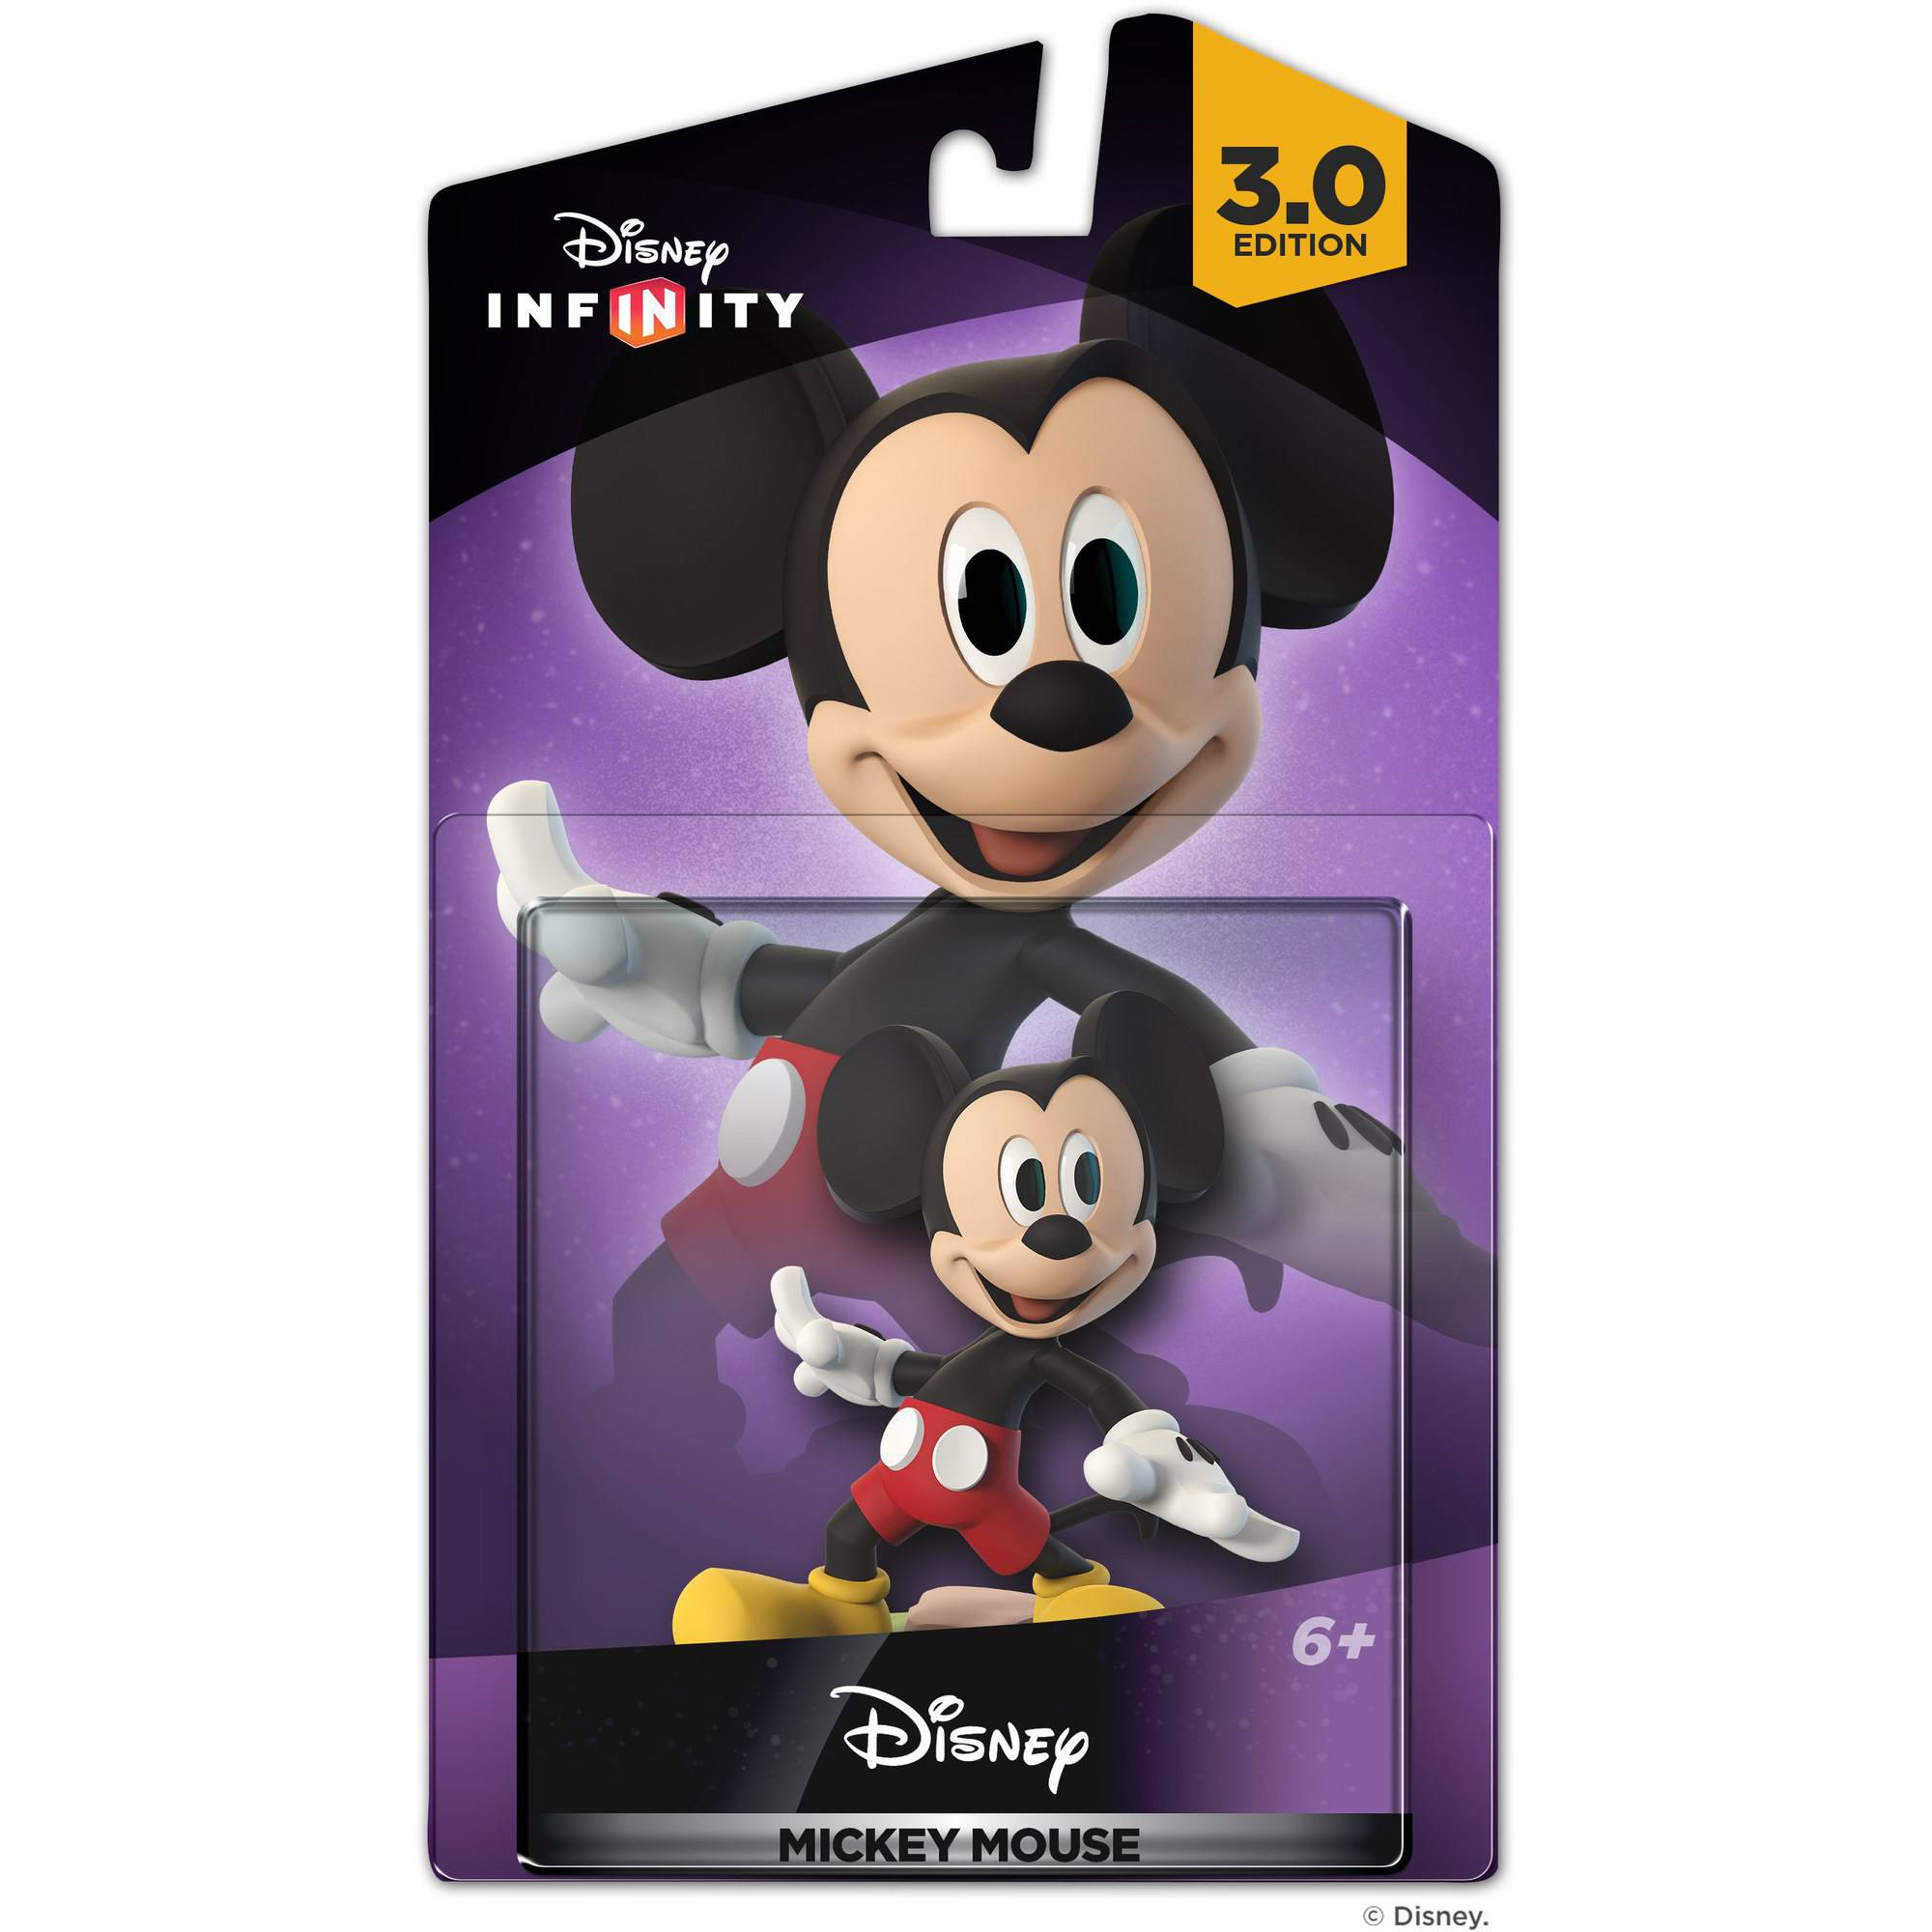 Disney Infinity 3.0 Edition: Mickey Mouse Figure by Disney